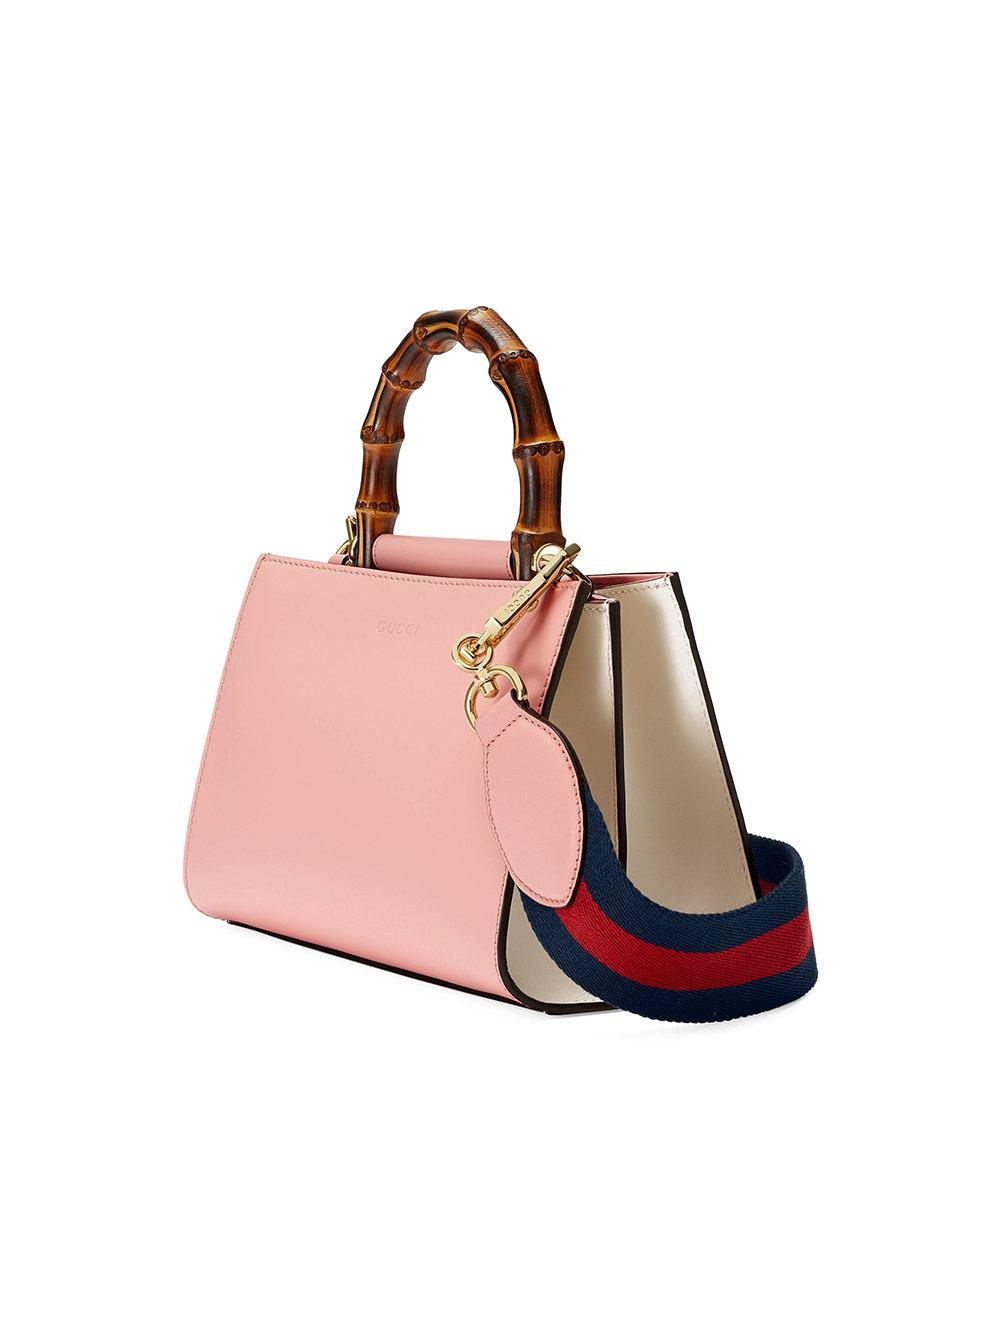 632507f485f Lyst - Gucci Nymphaea Leather Top Handle Bag in Pink